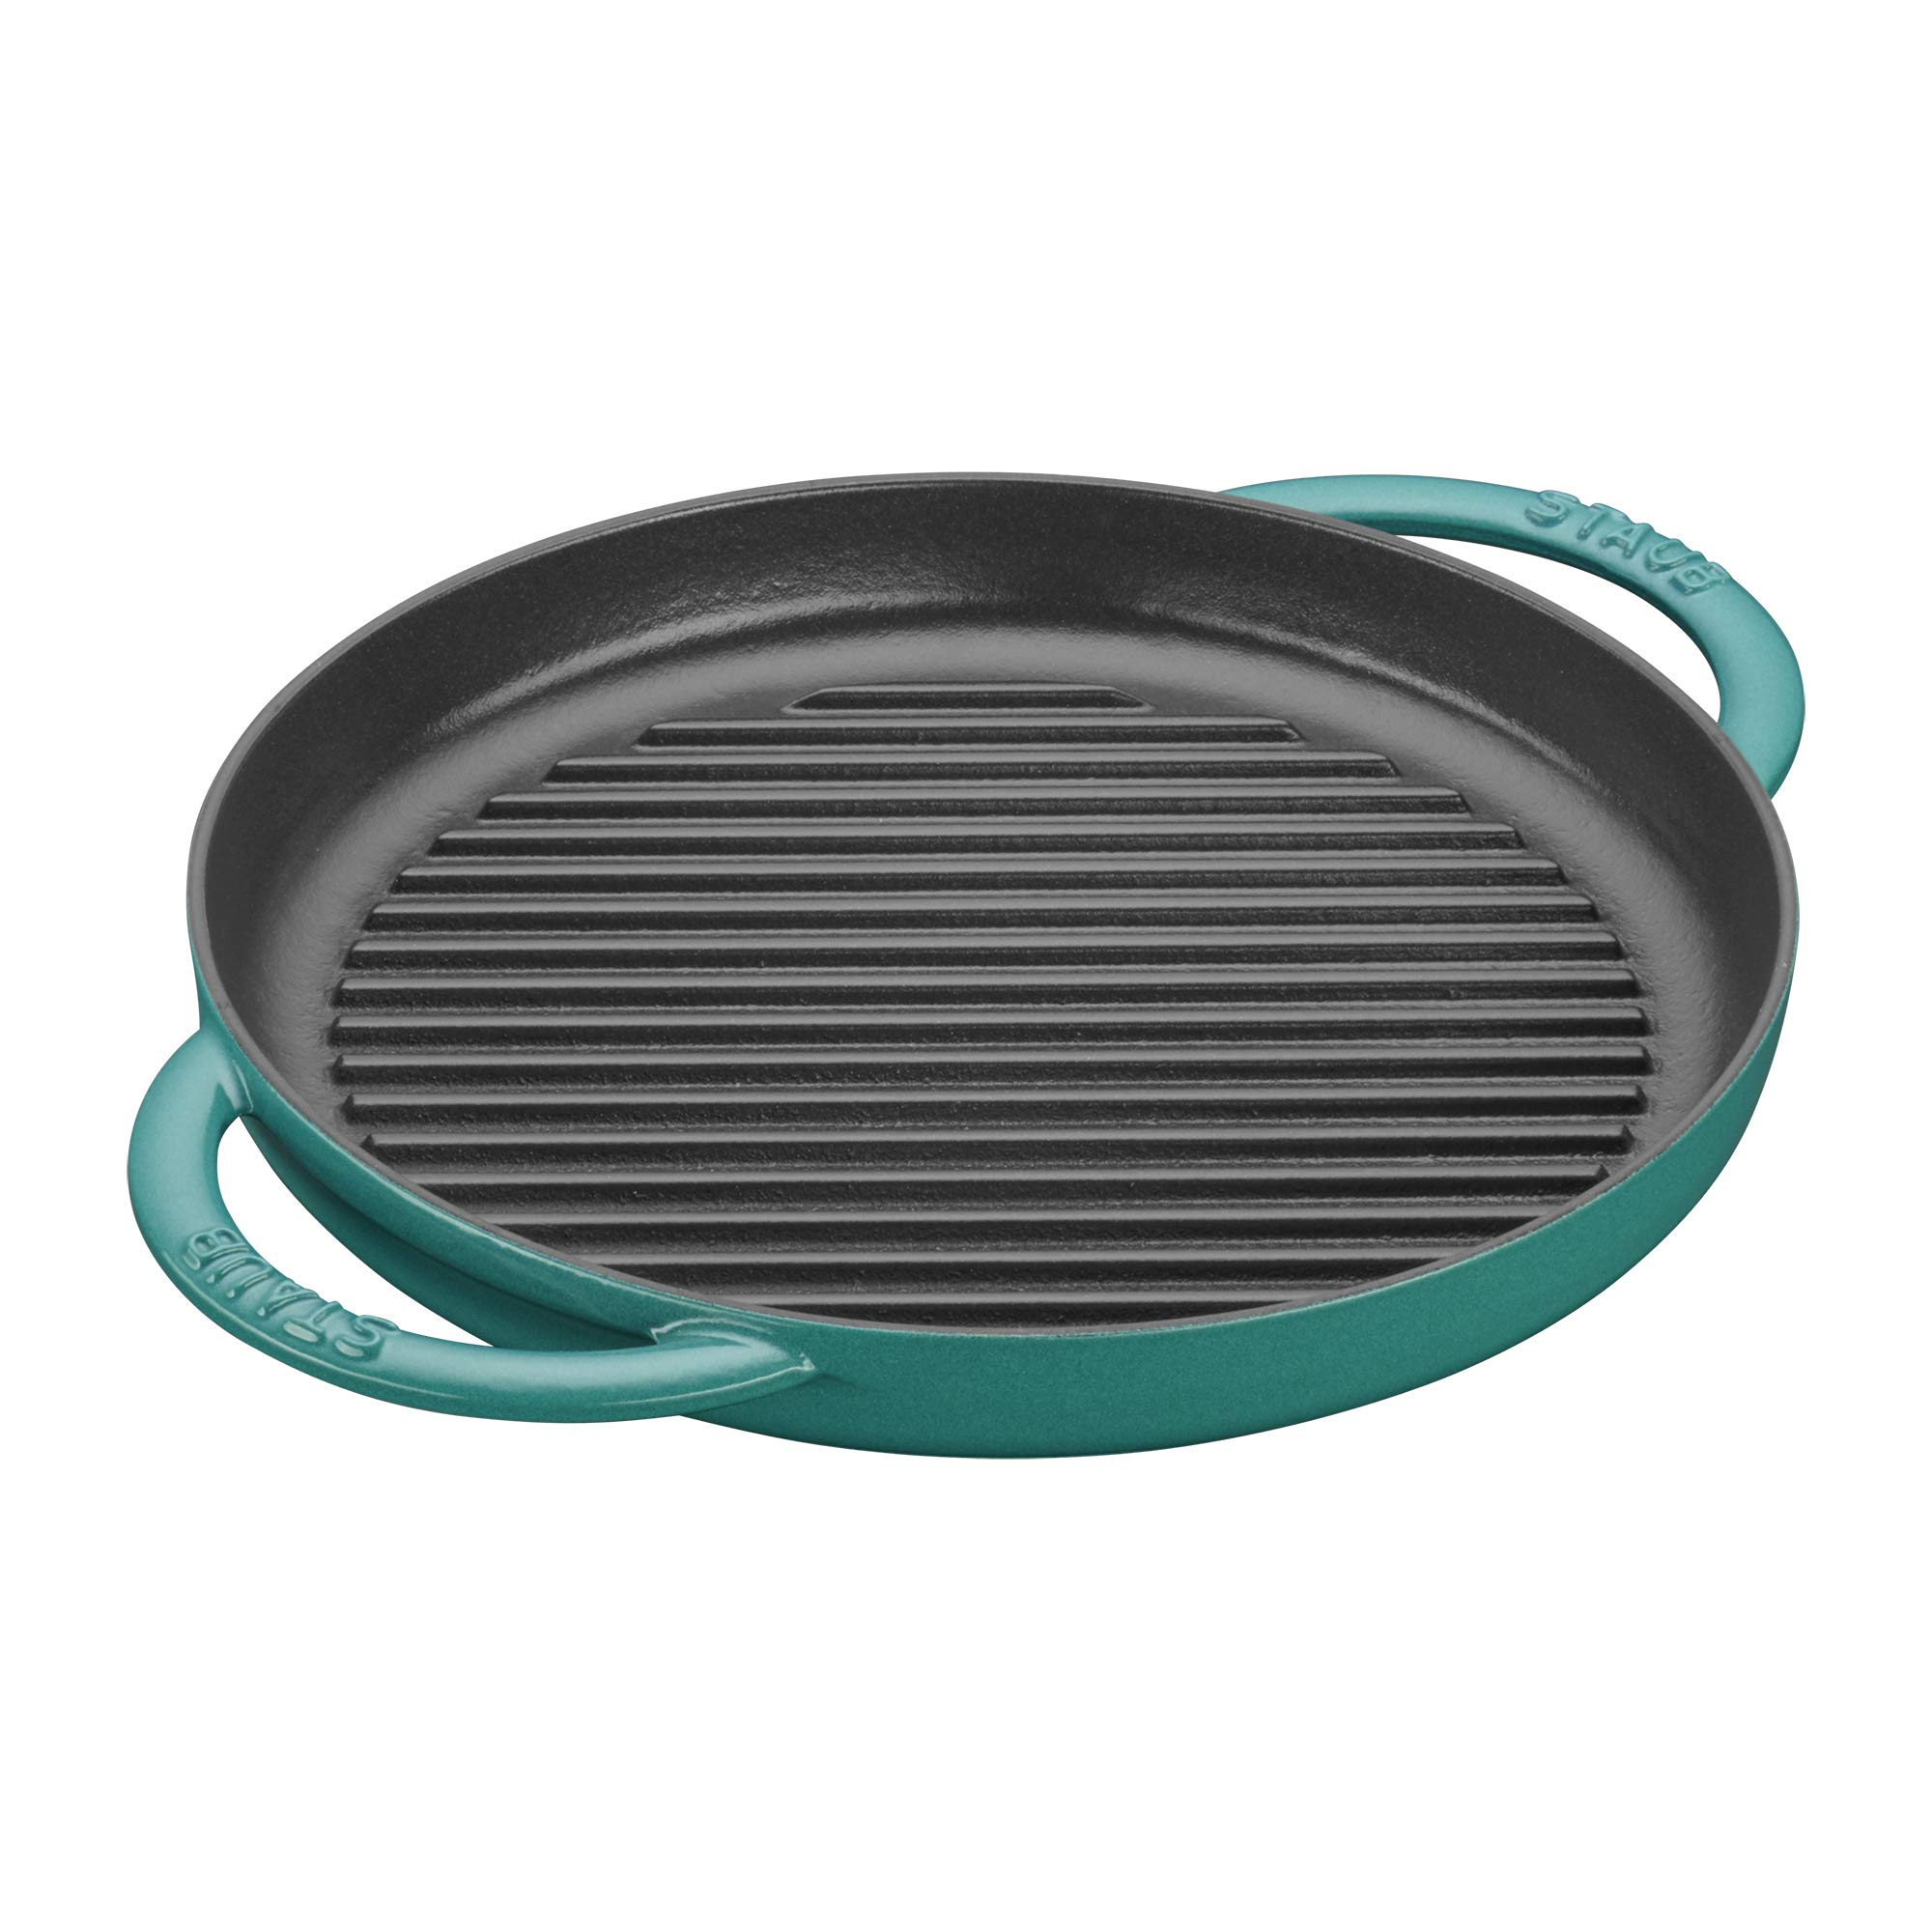 Staub Cast Iron 10-inch Pure Grill - Turquoise